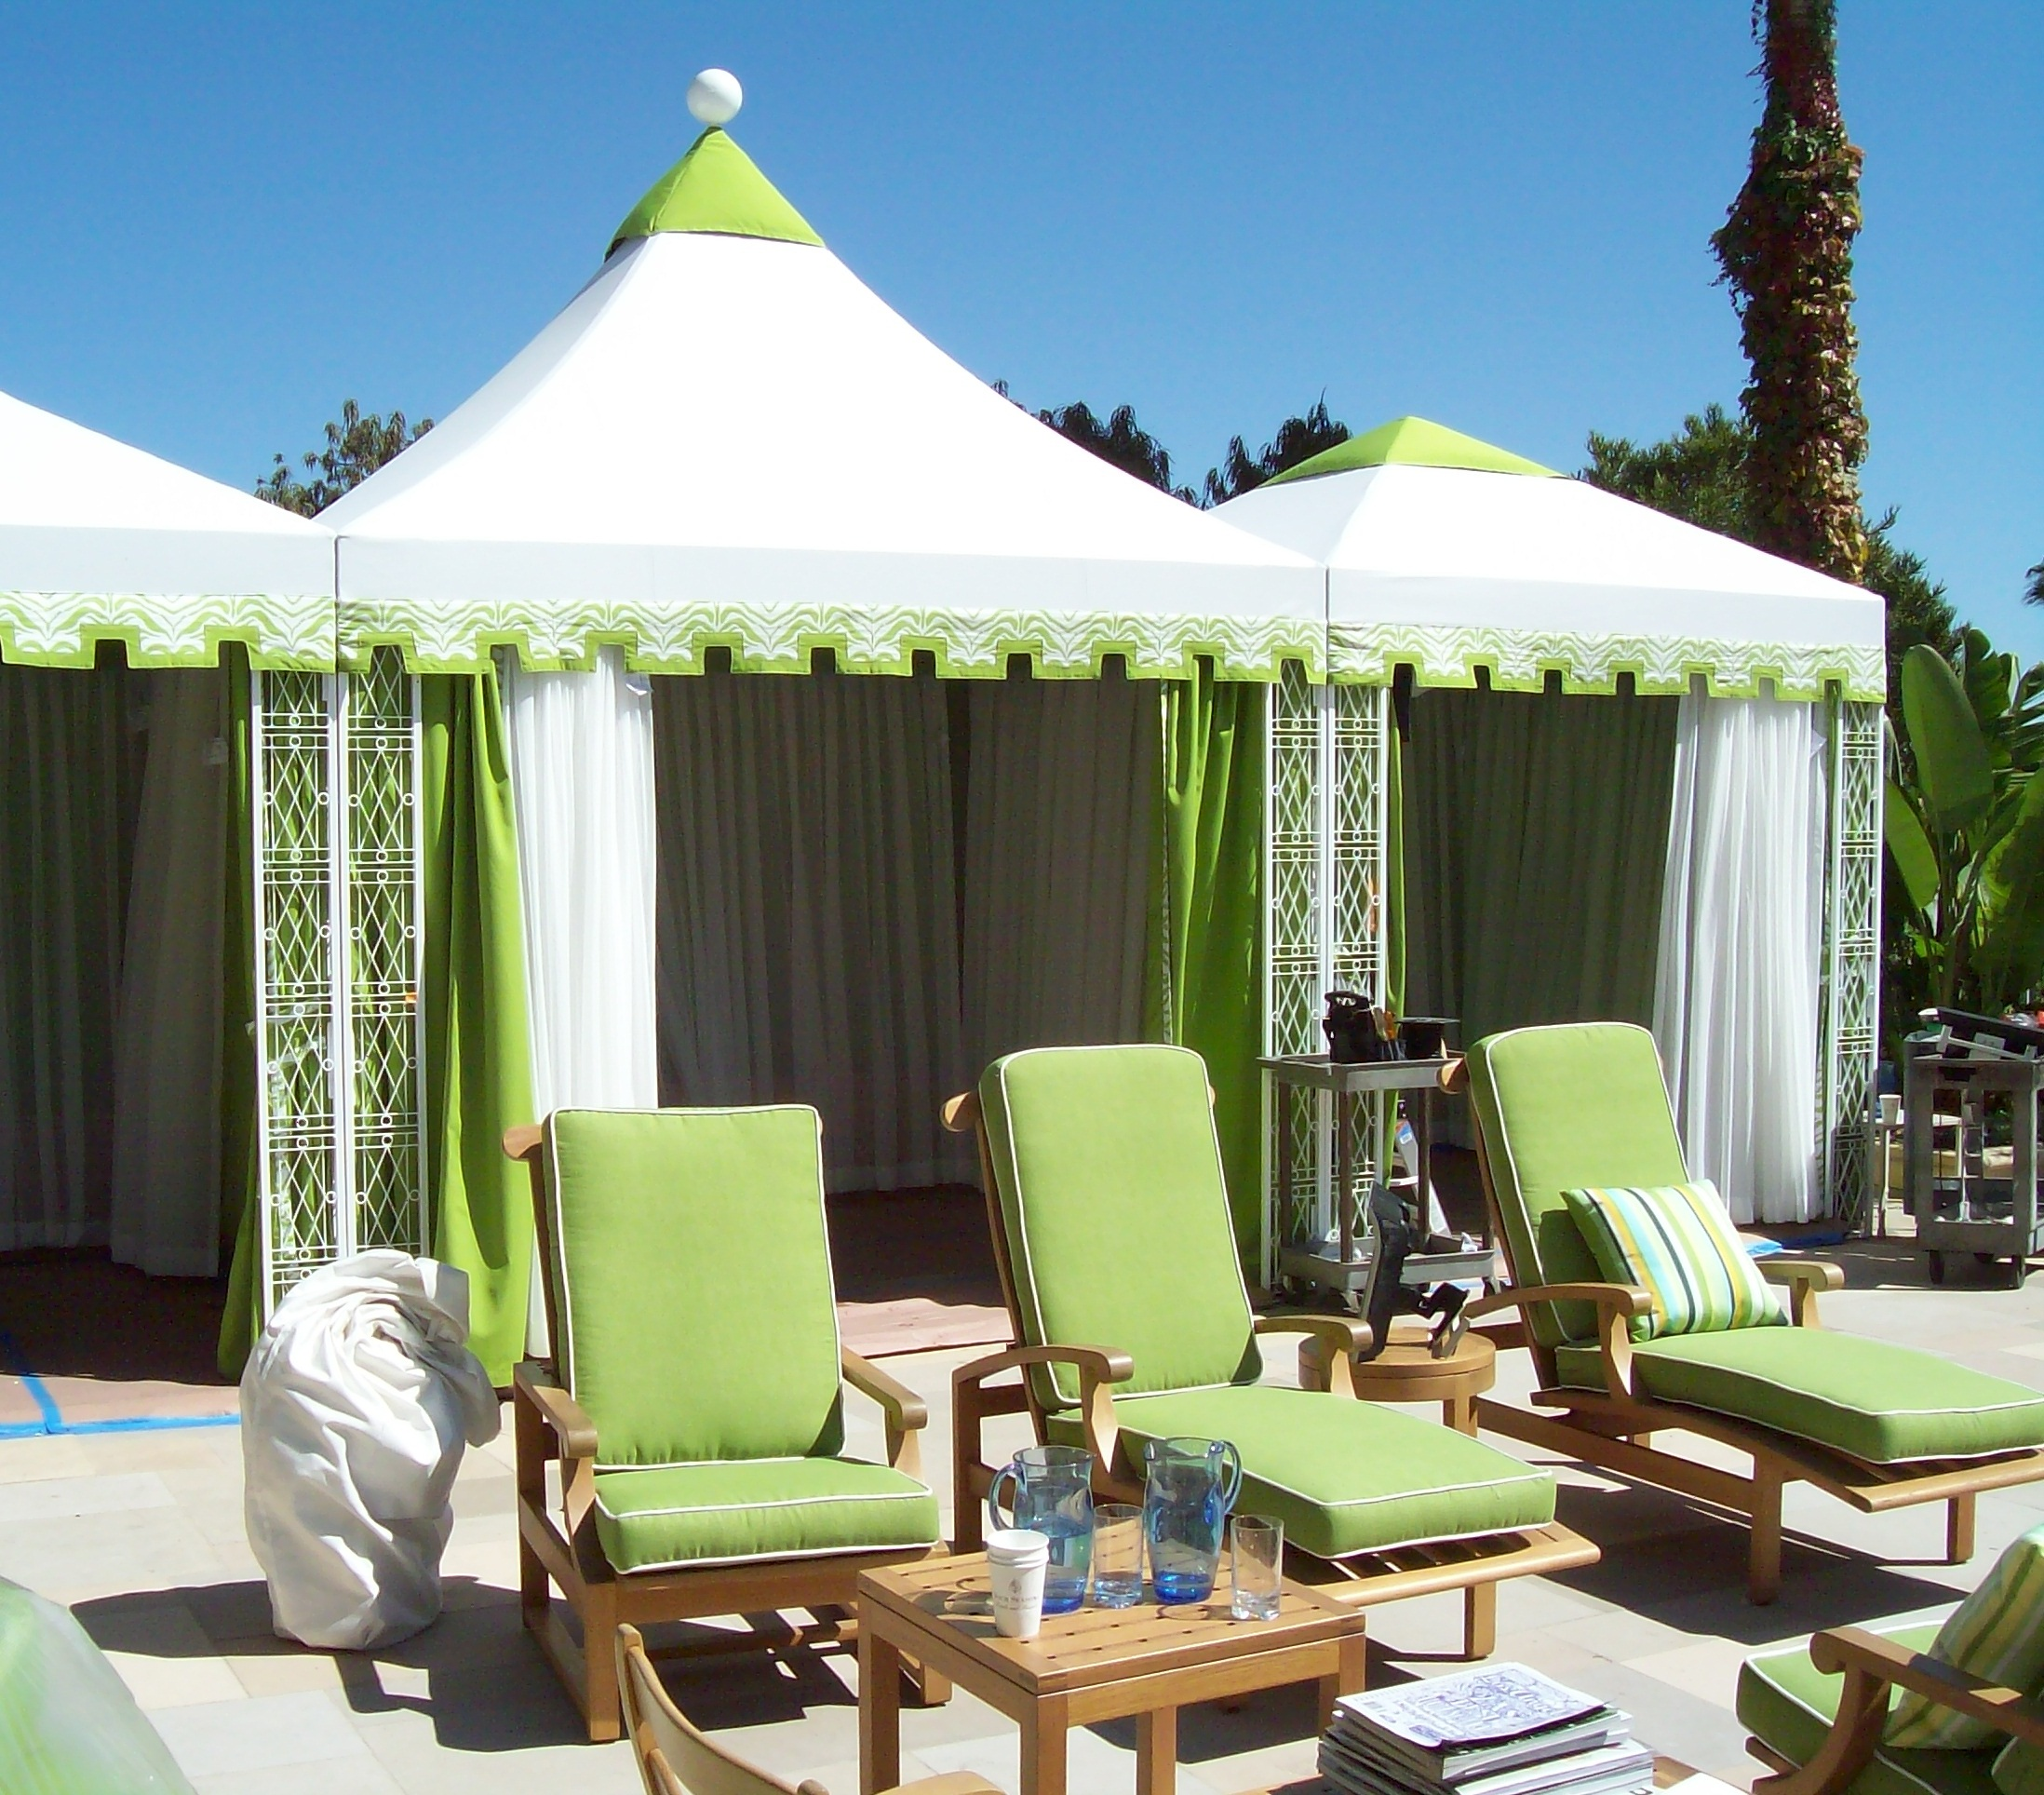 The Pinnacle Cabana Outdoor Cabanas